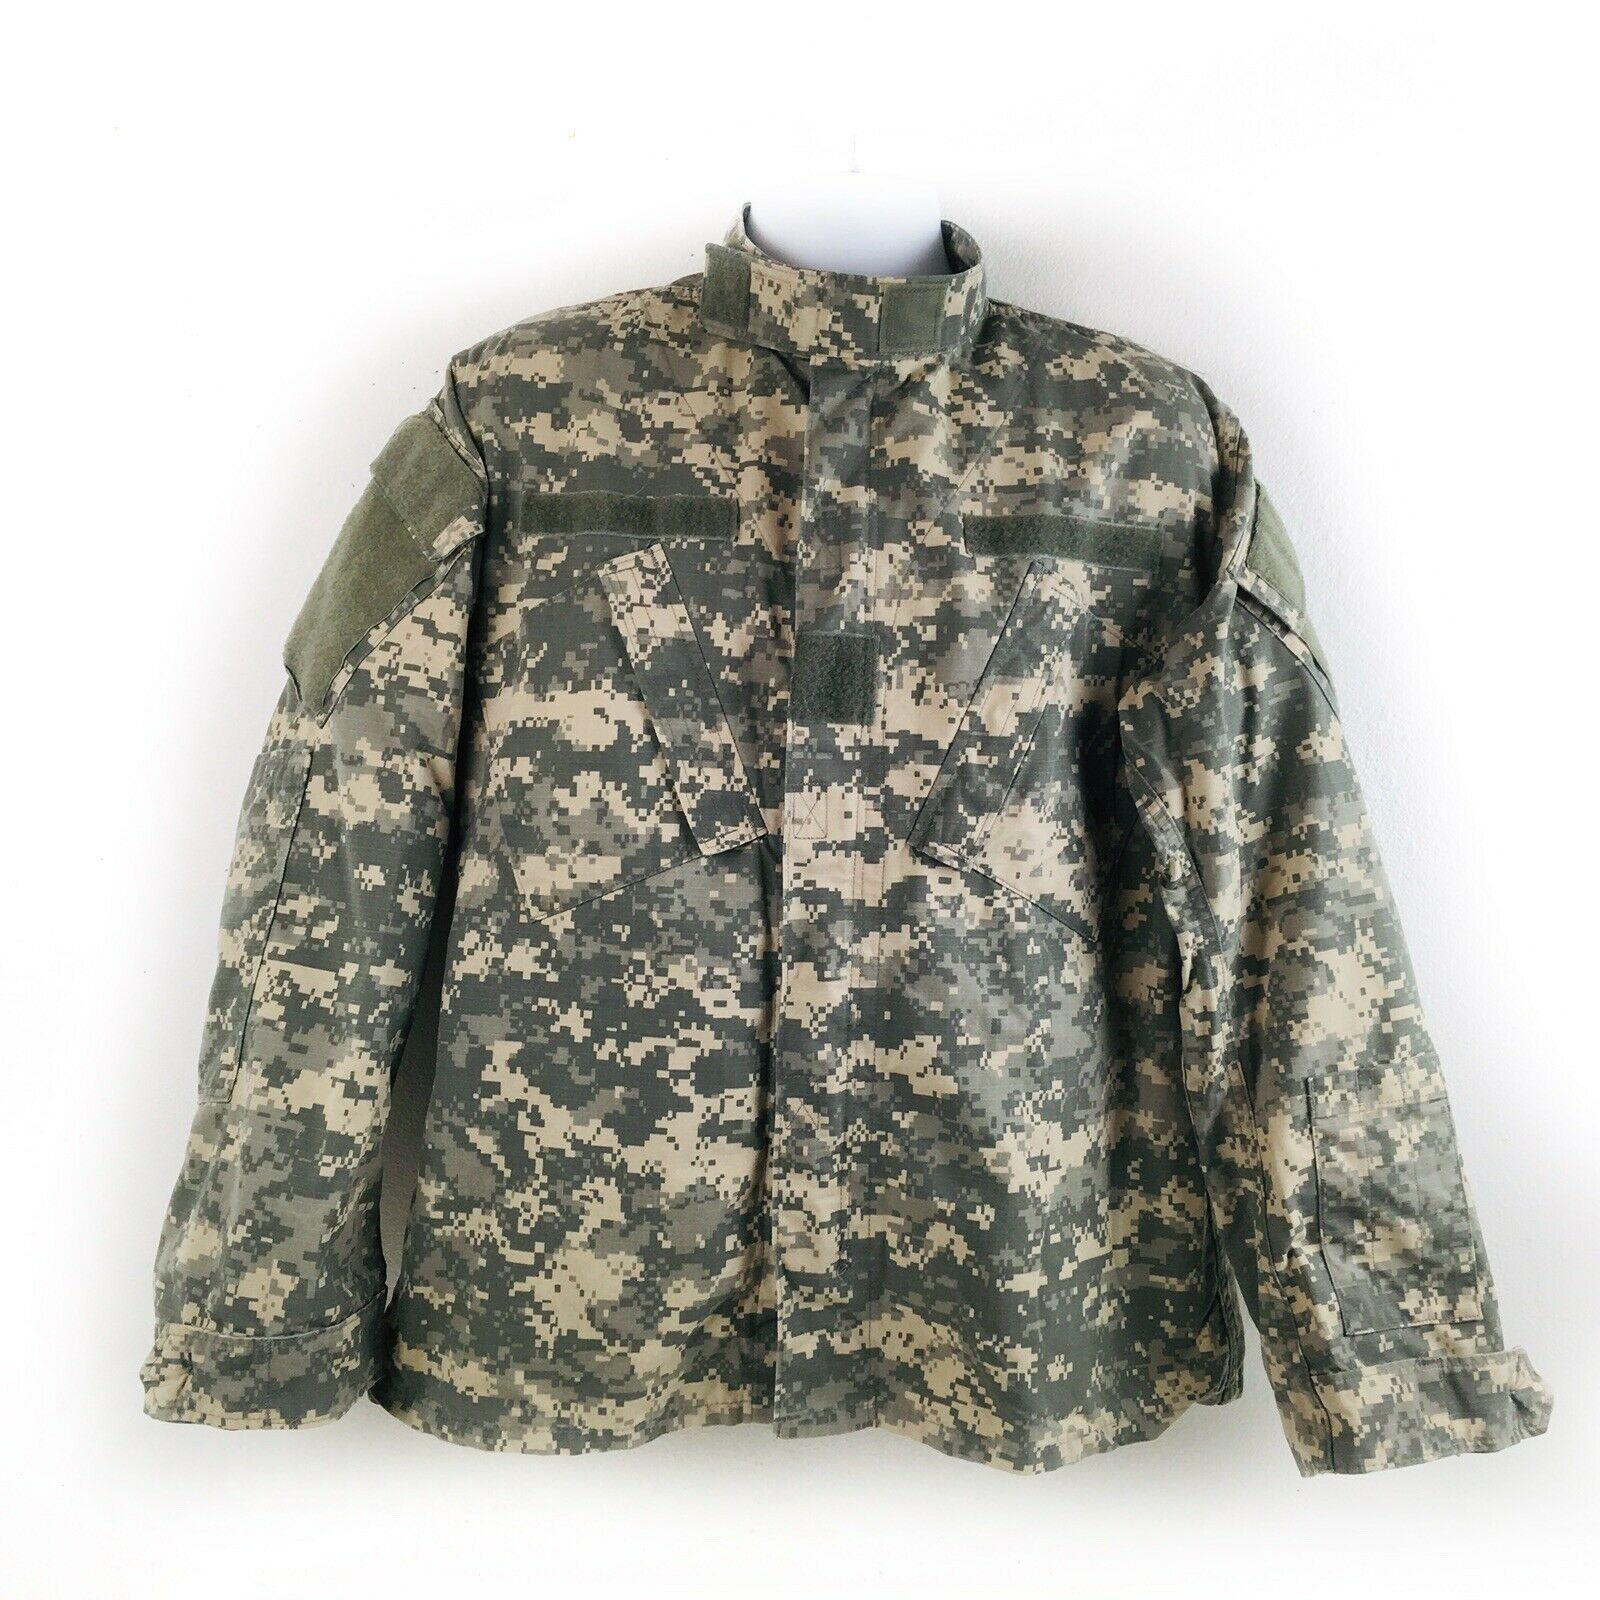 US Army Combat Uniform Medium Tactical  Gear Military Outdoor Hunting Coat  for cheap